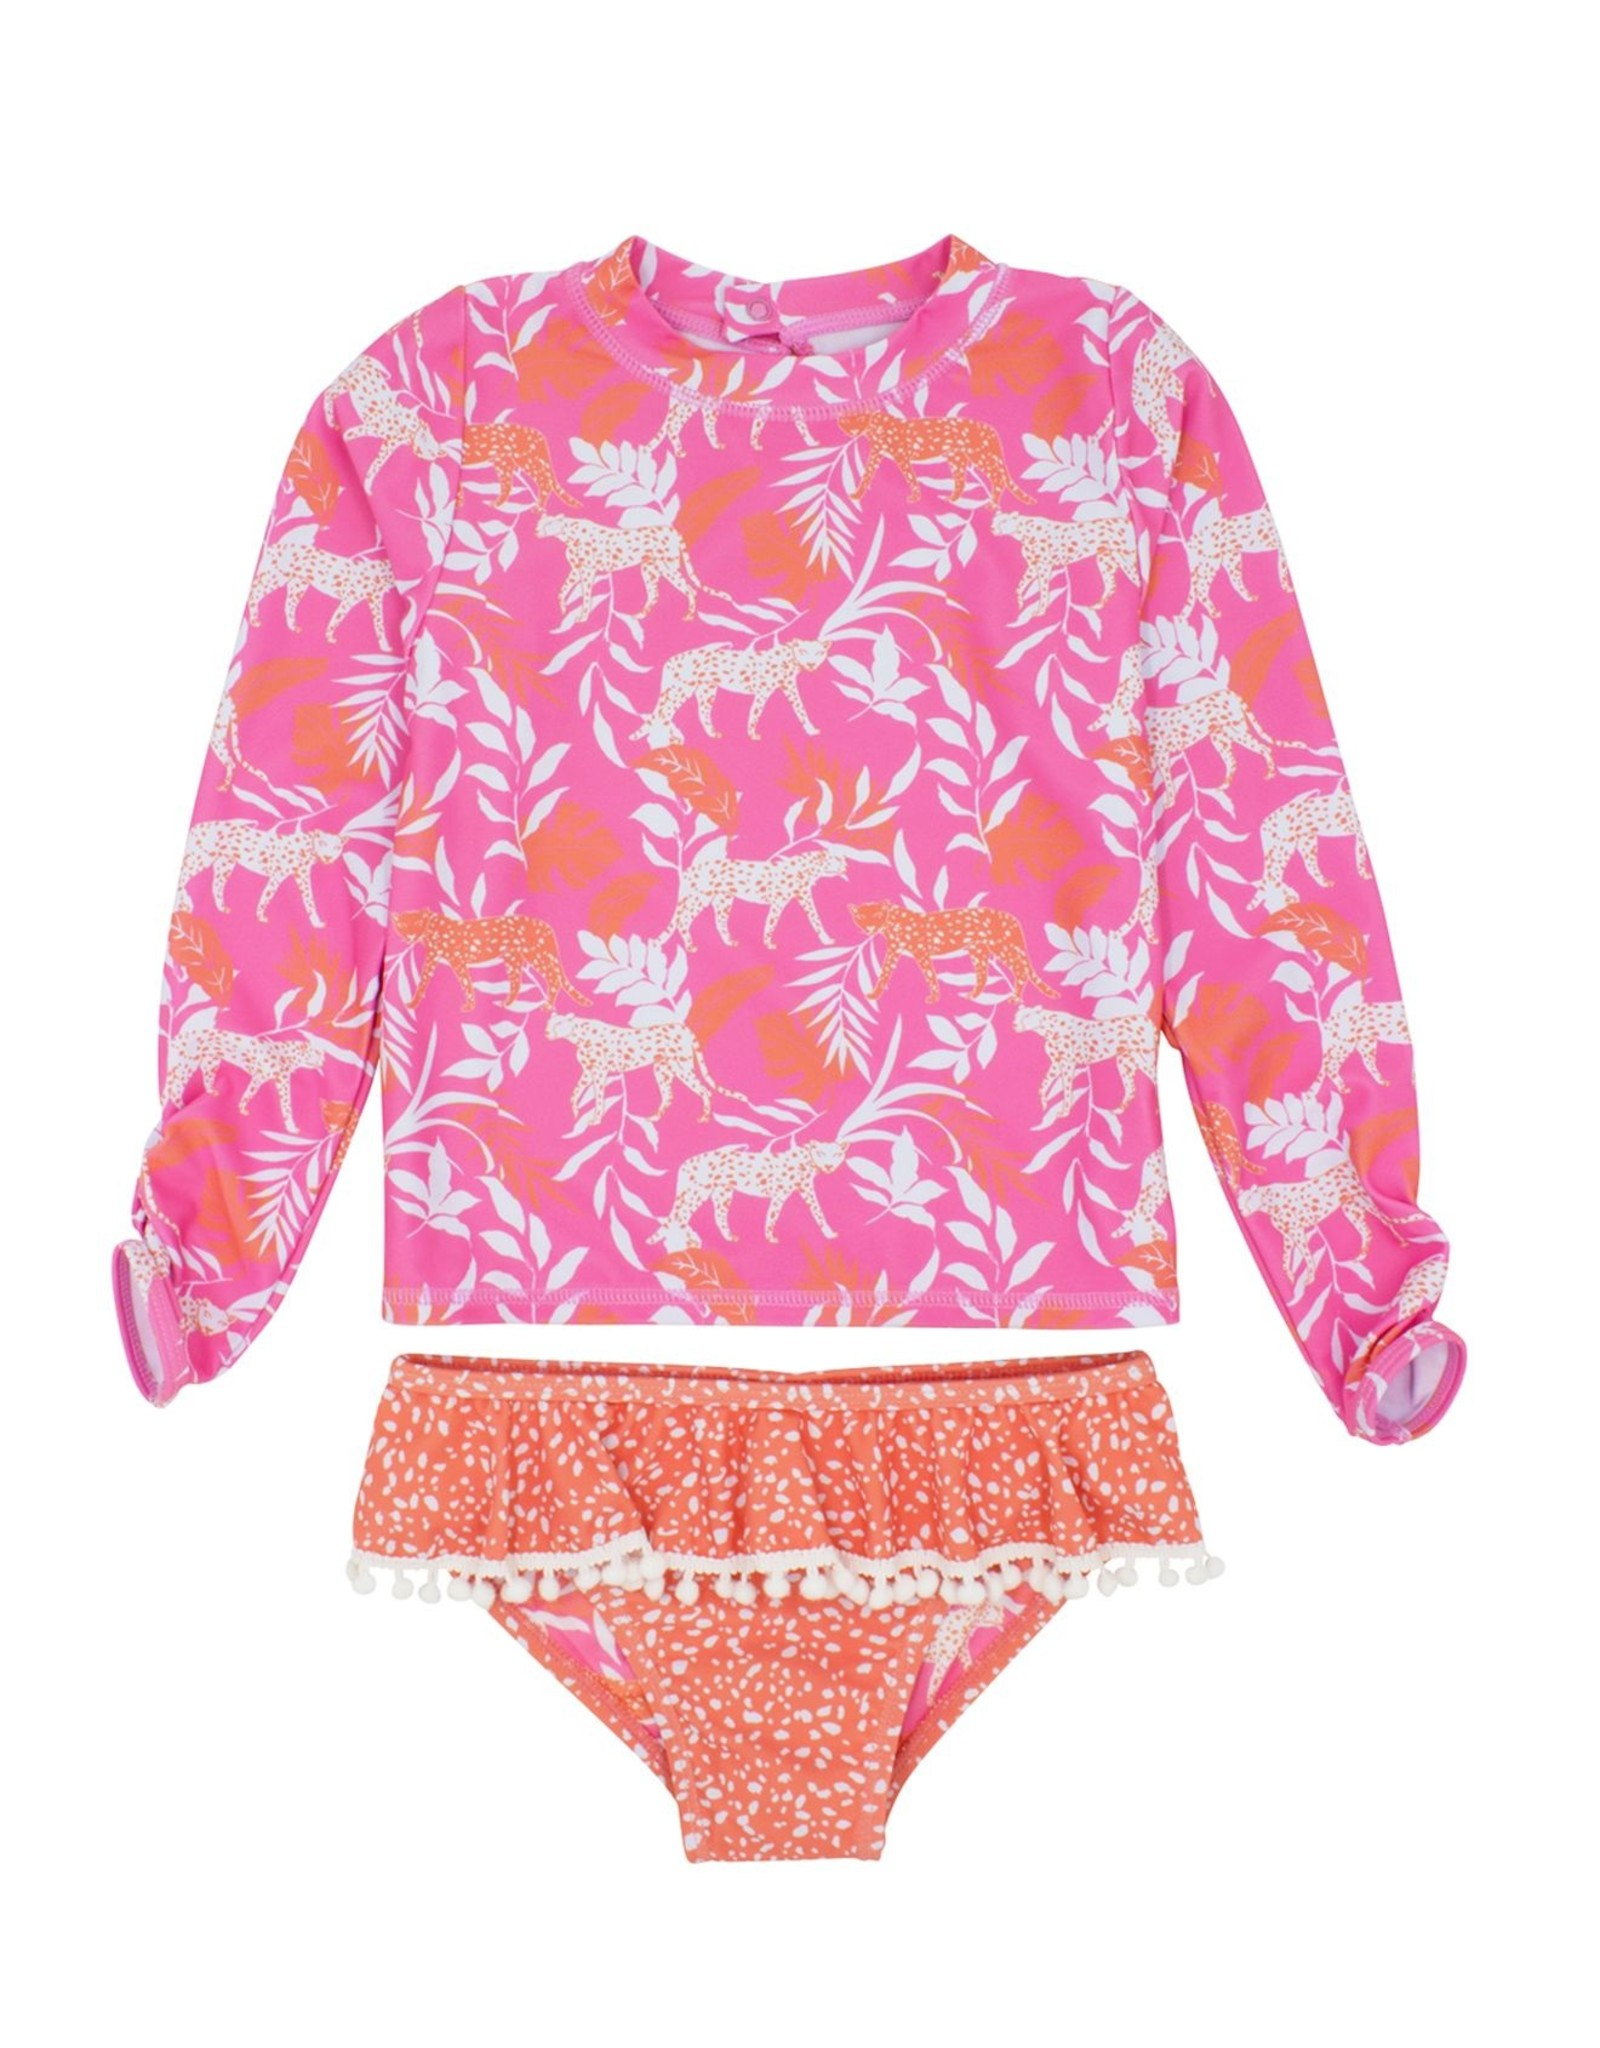 Feather 4 Arrow ruffle l/s set- coral crush